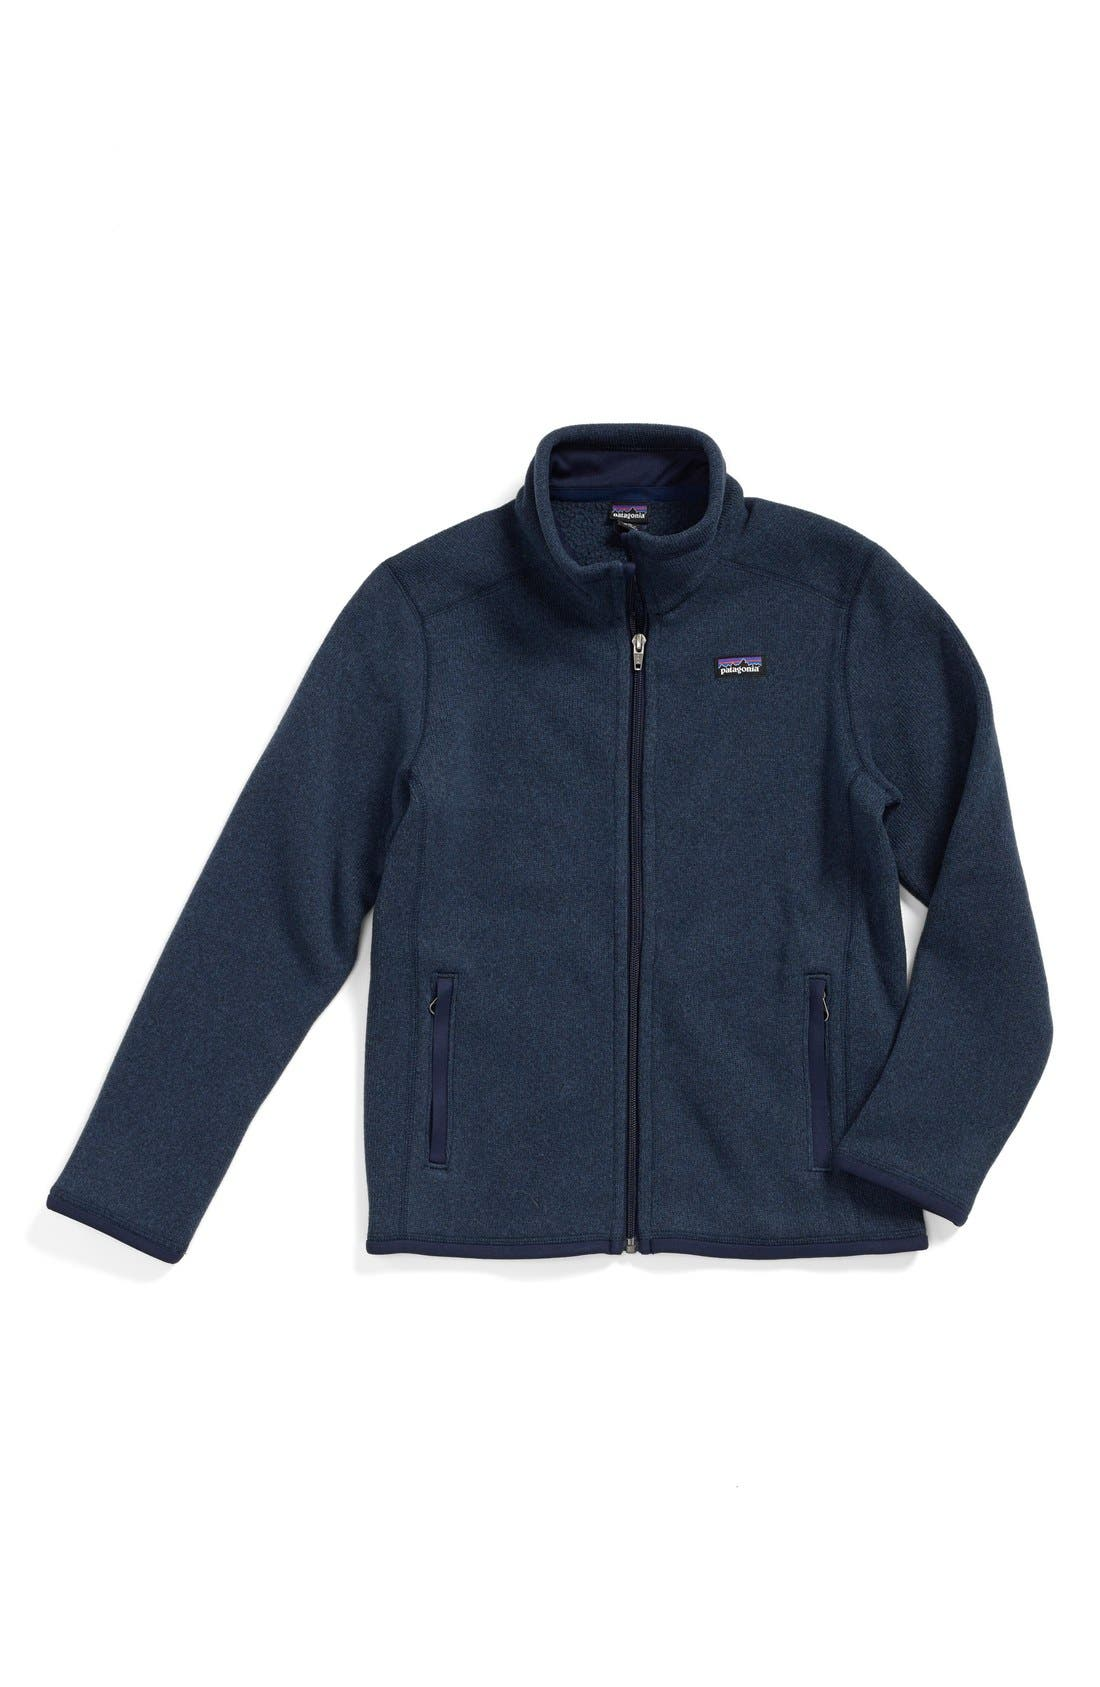 Better Sweater Jacket,                         Main,                         color, CLASSIC NAVY